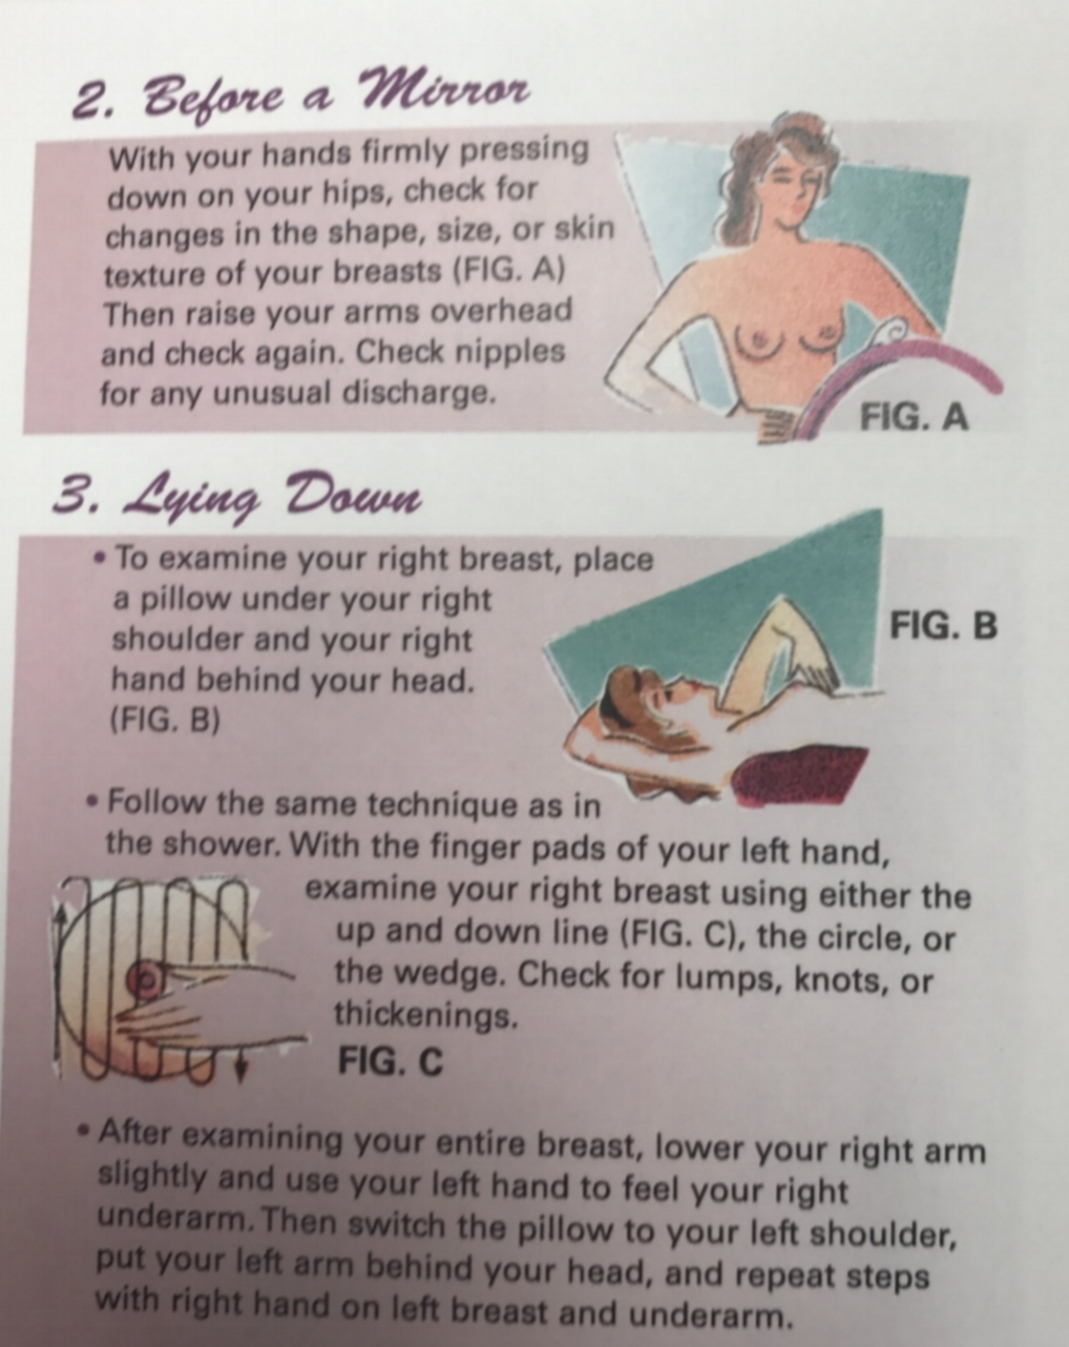 At Methodist North, they offer these useful handouts giving a guide on giving yourself a breast exam.